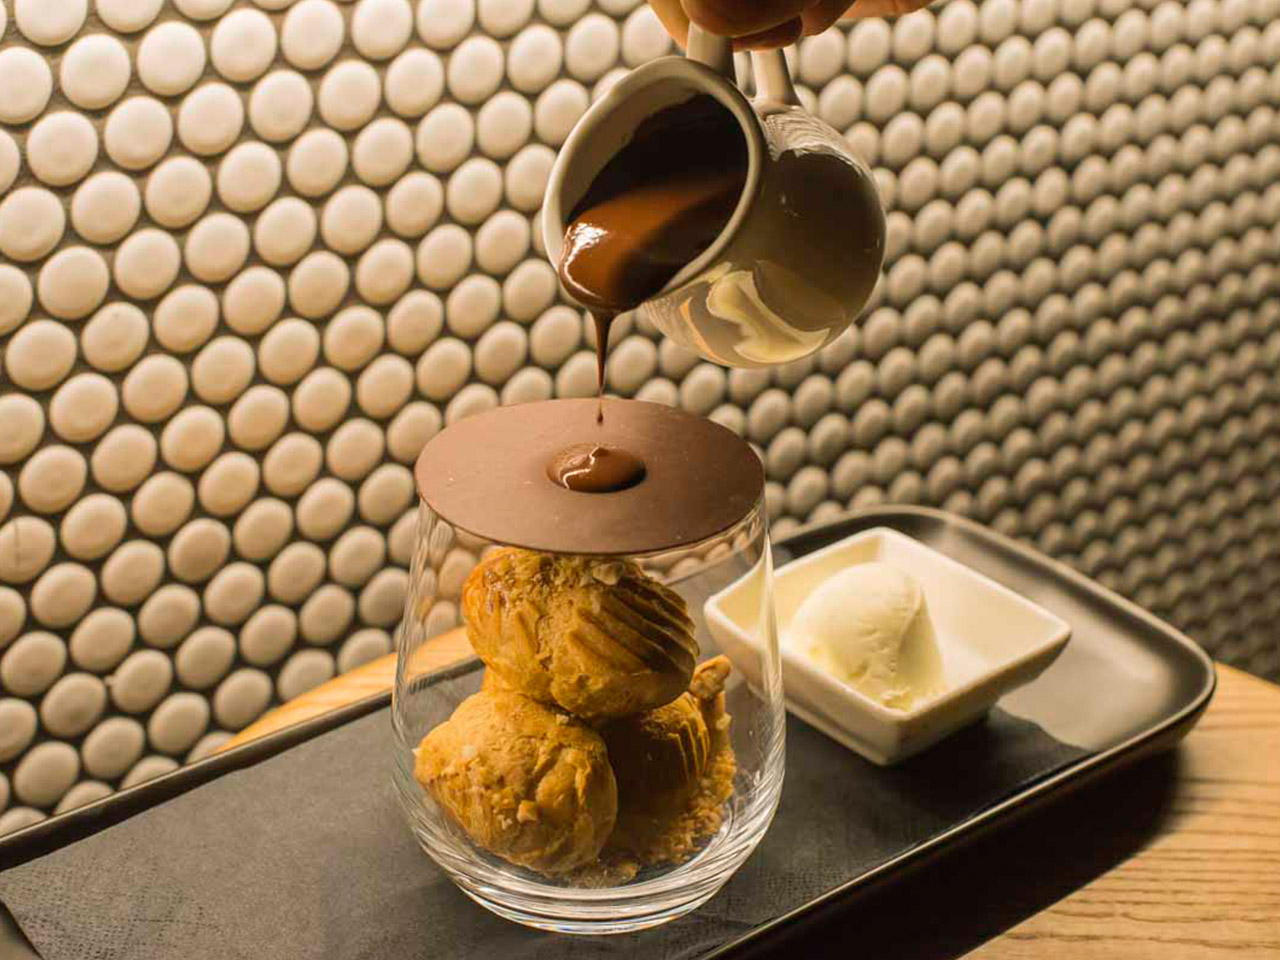 Melted Chocolate and a Pettite Choux Puffs